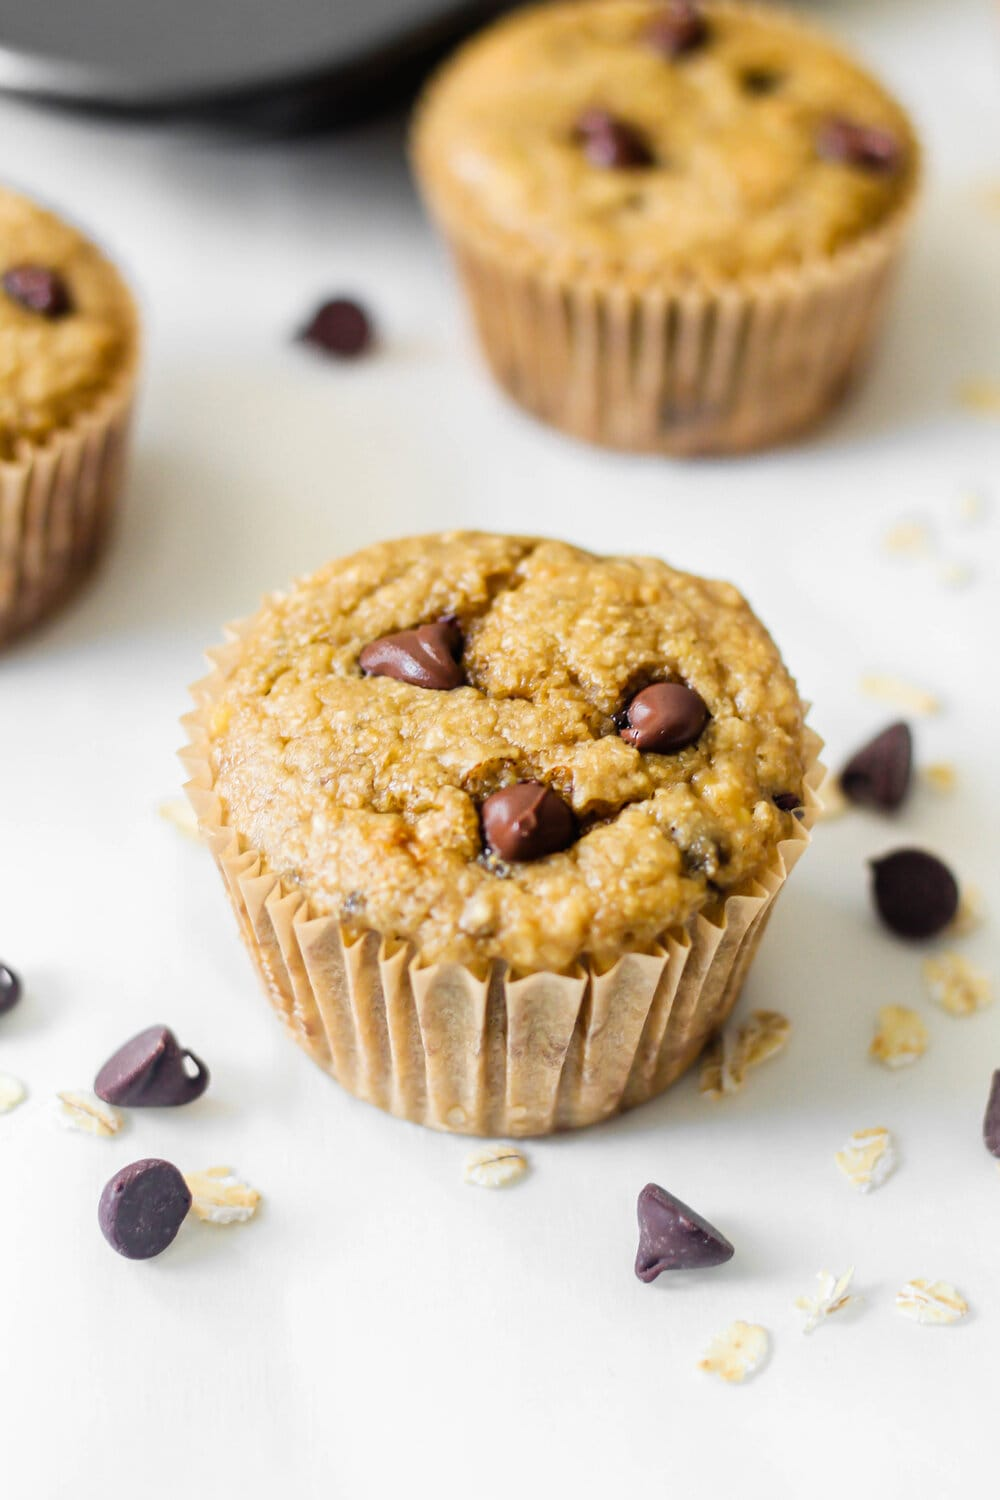 Healthy Gluten Free Banana Chocolate Chip Muffins side view.jpg